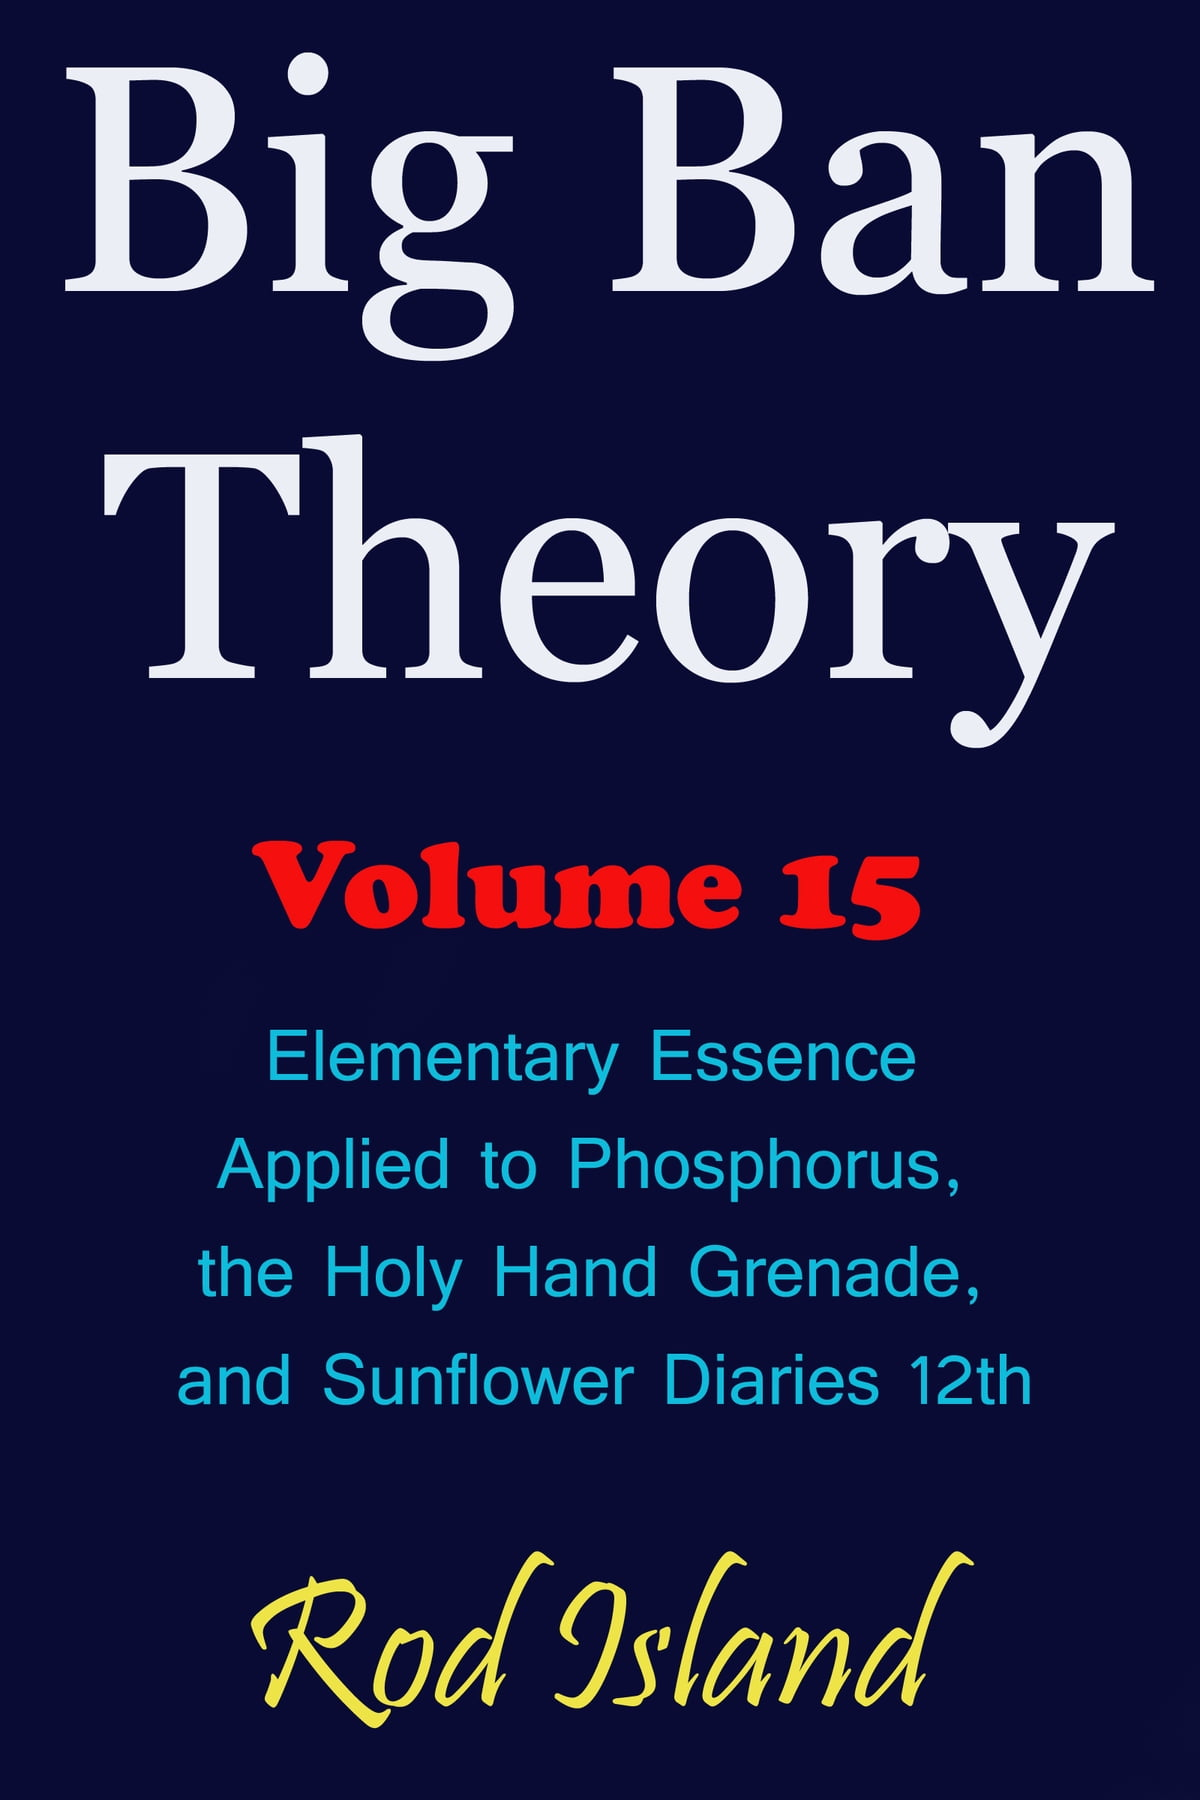 Big Ban Theory: Elementary Essence Applied to Phosphorus, the Holy